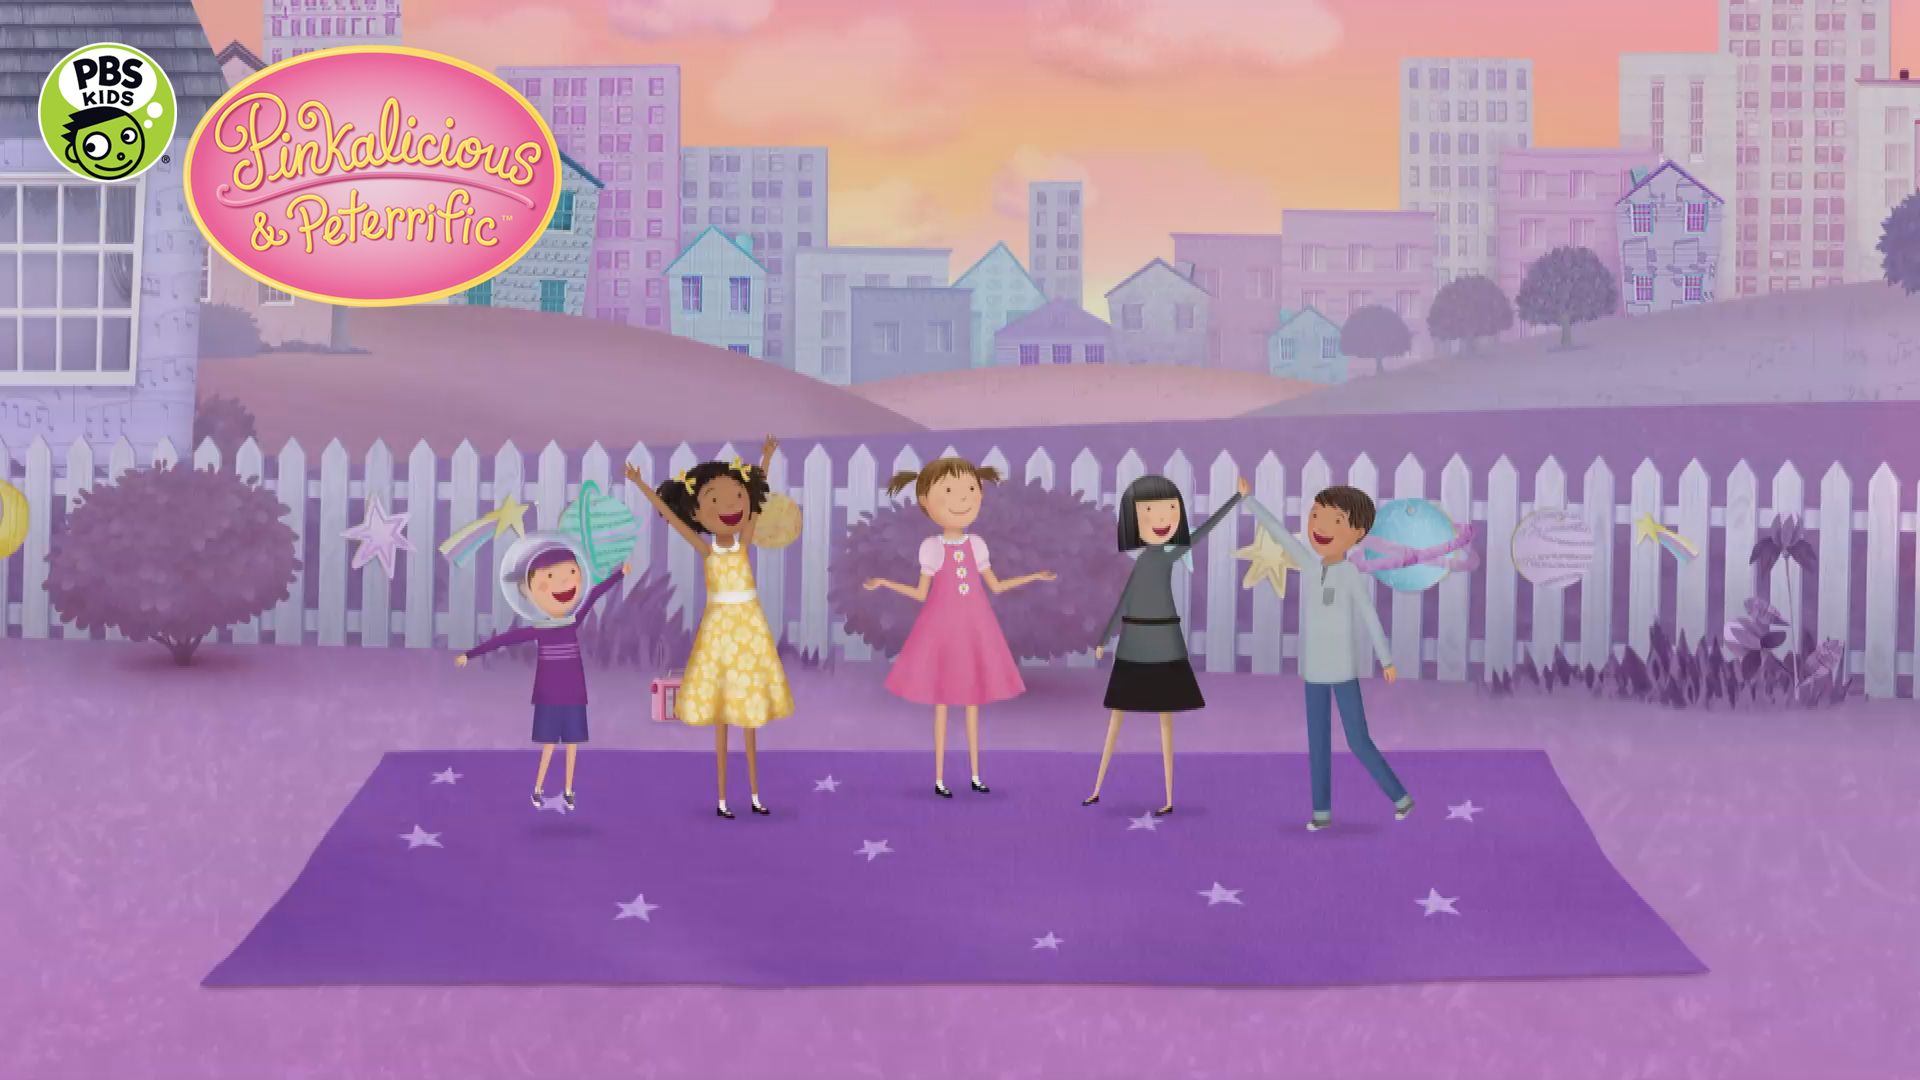 Space Dance Pinkalicious Peterrific Dance Lessons Pbs Kids Kids Dance